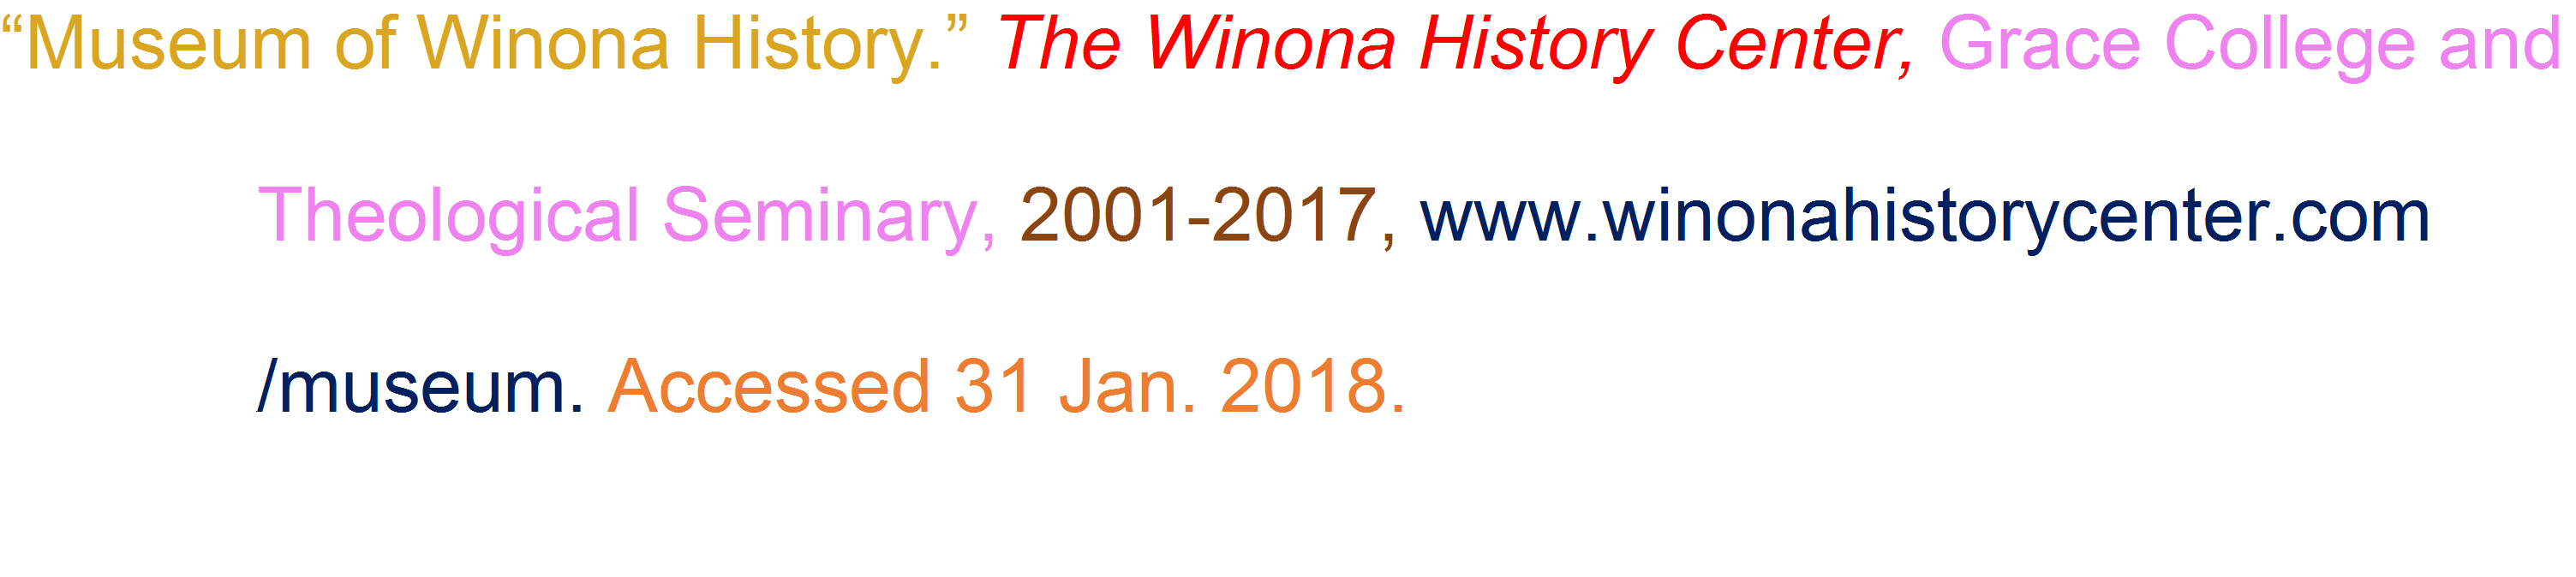 Web page Citation without Editor